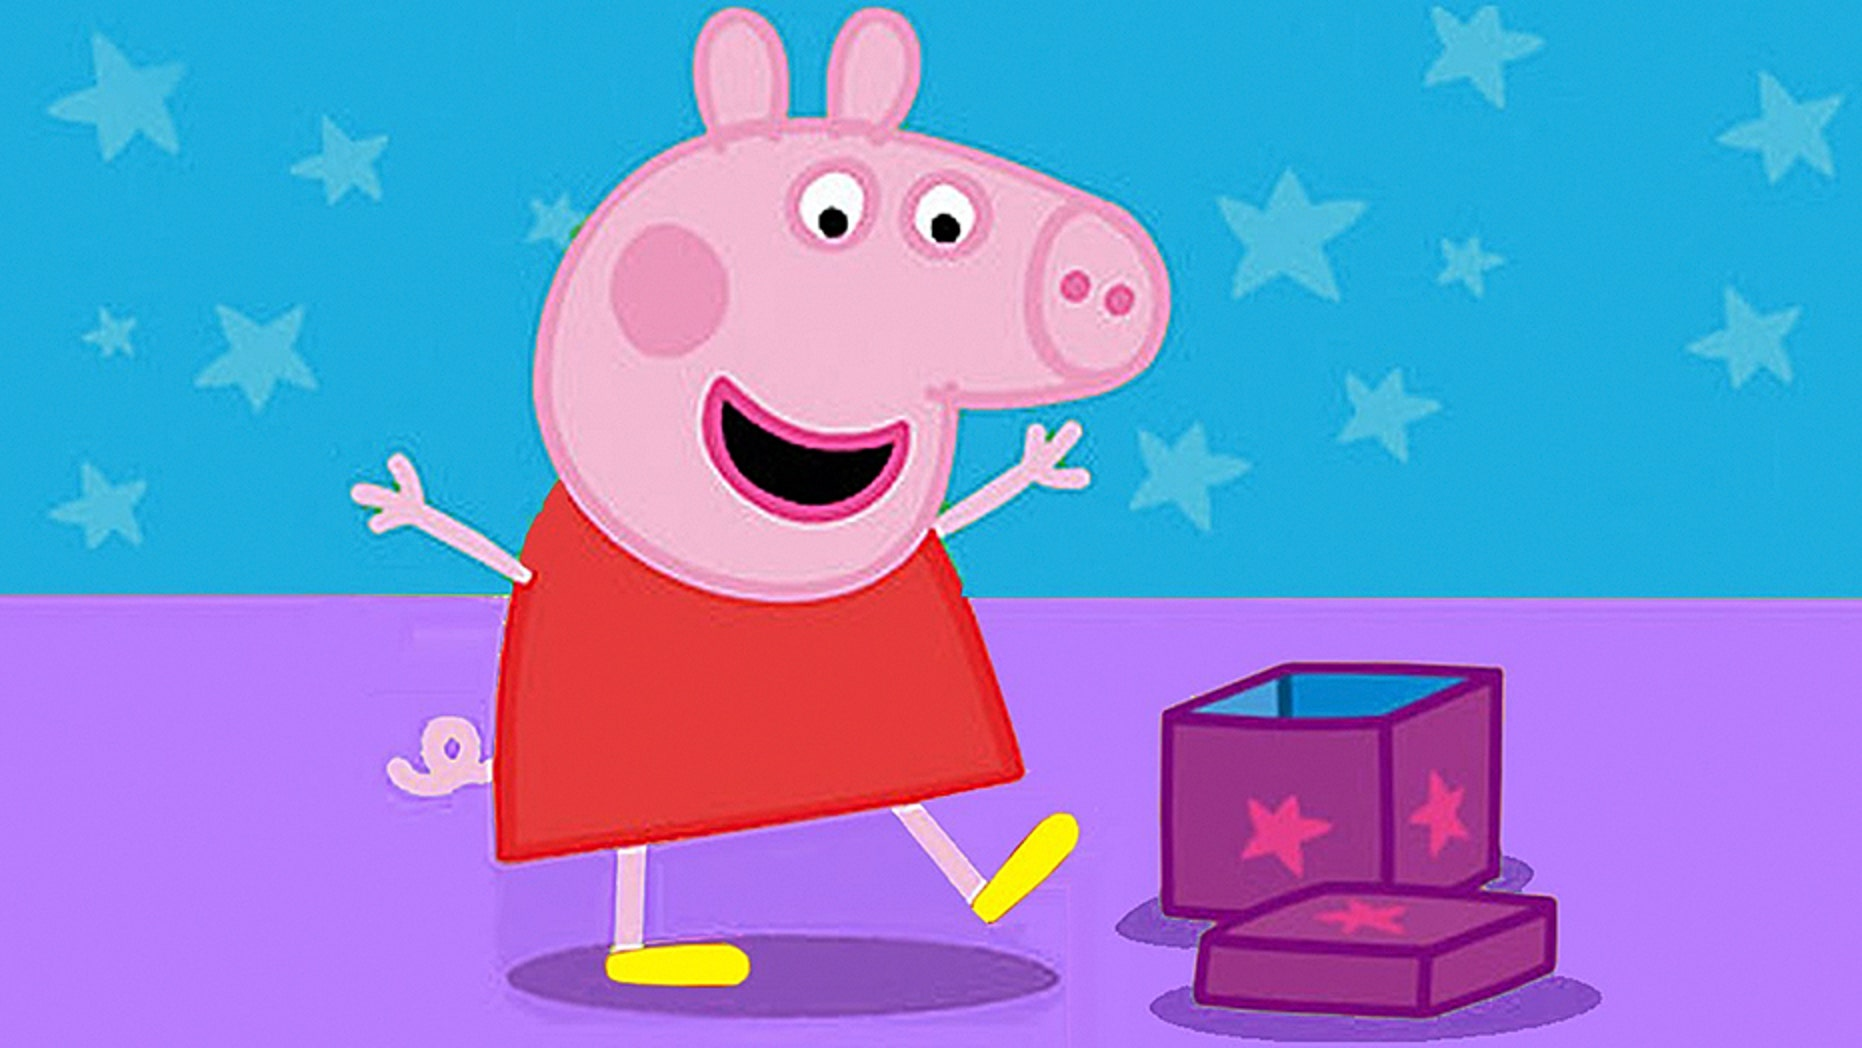 Peppa Pig is one of the most popular children's characters on TV, but parents were shocked after one Twitter user unveiled a horrifying new side to the animated favorite.